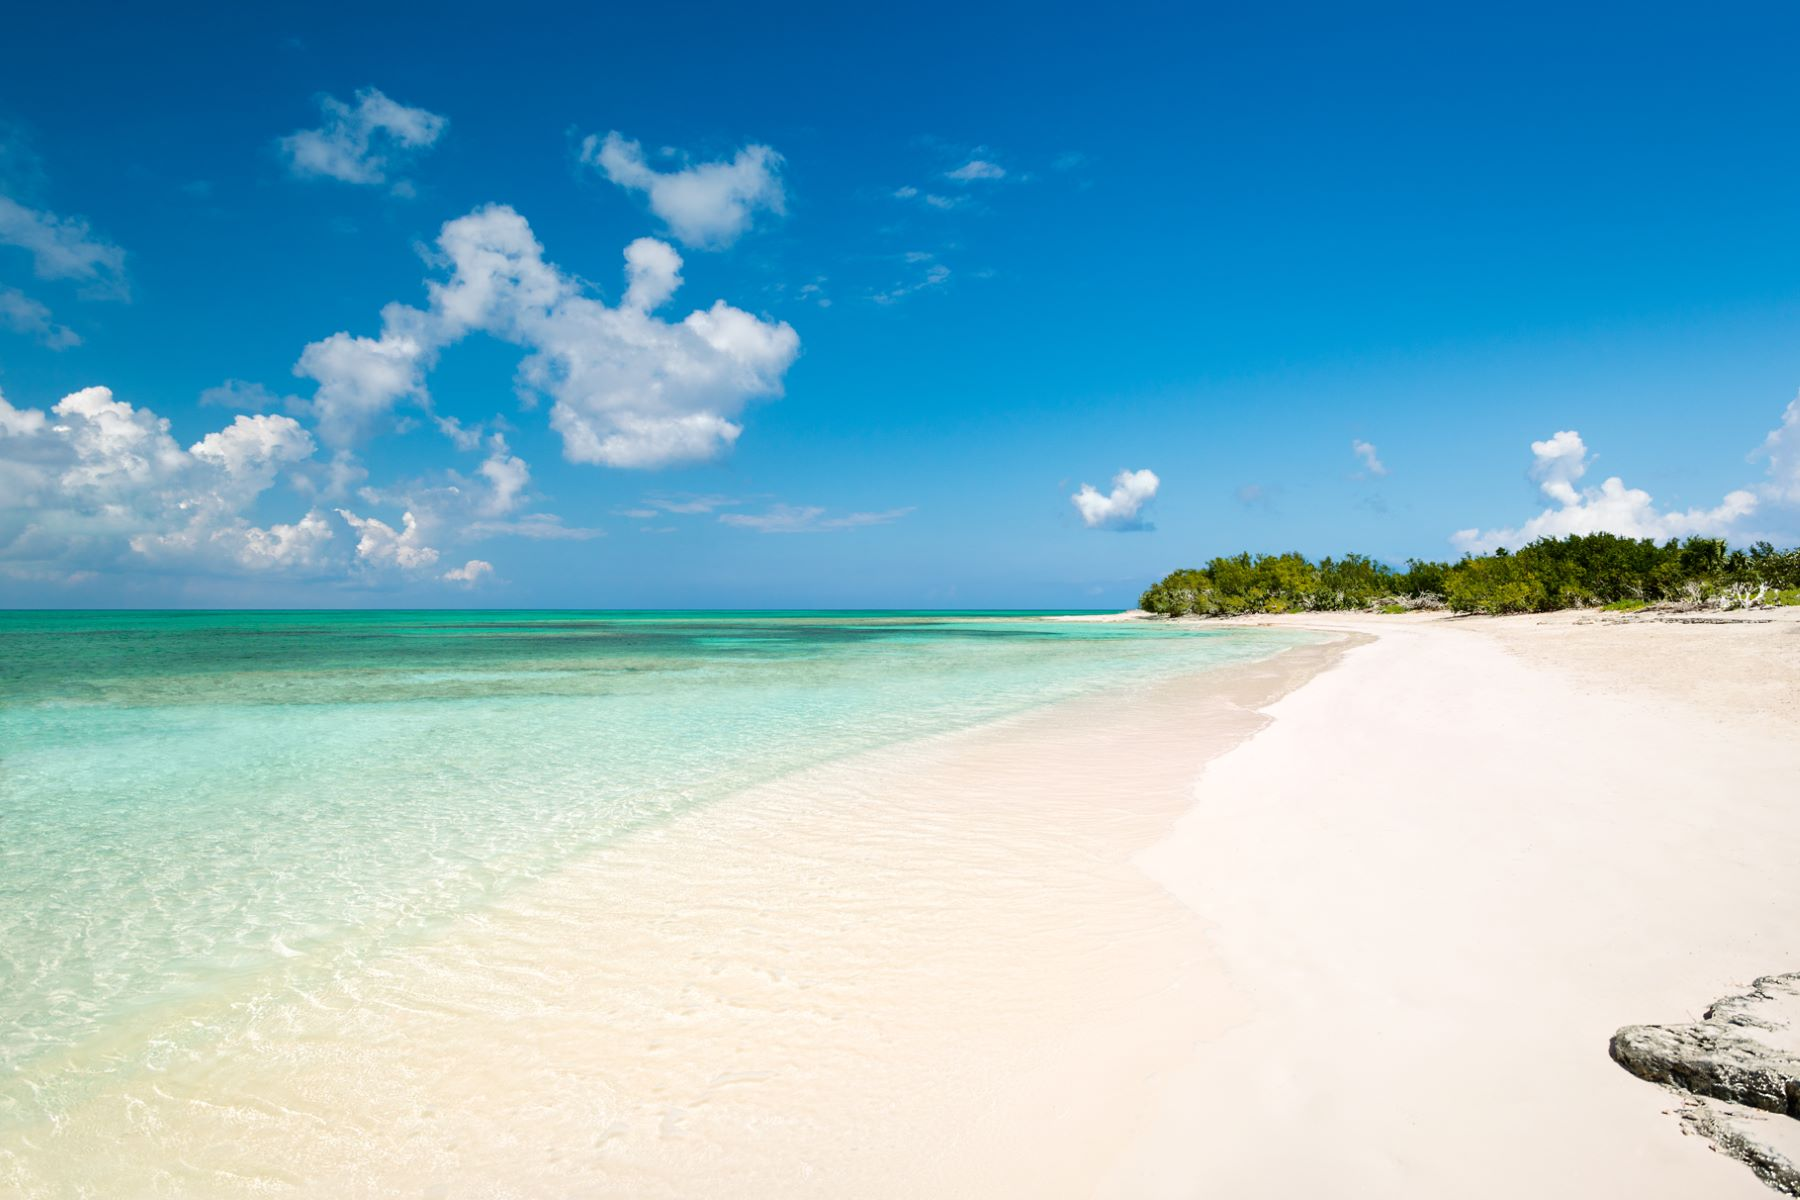 Land for Sale at Parrot Cay Estate Land 1& 2 Parrot Cay, Parrot Cay Turks And Caicos Islands